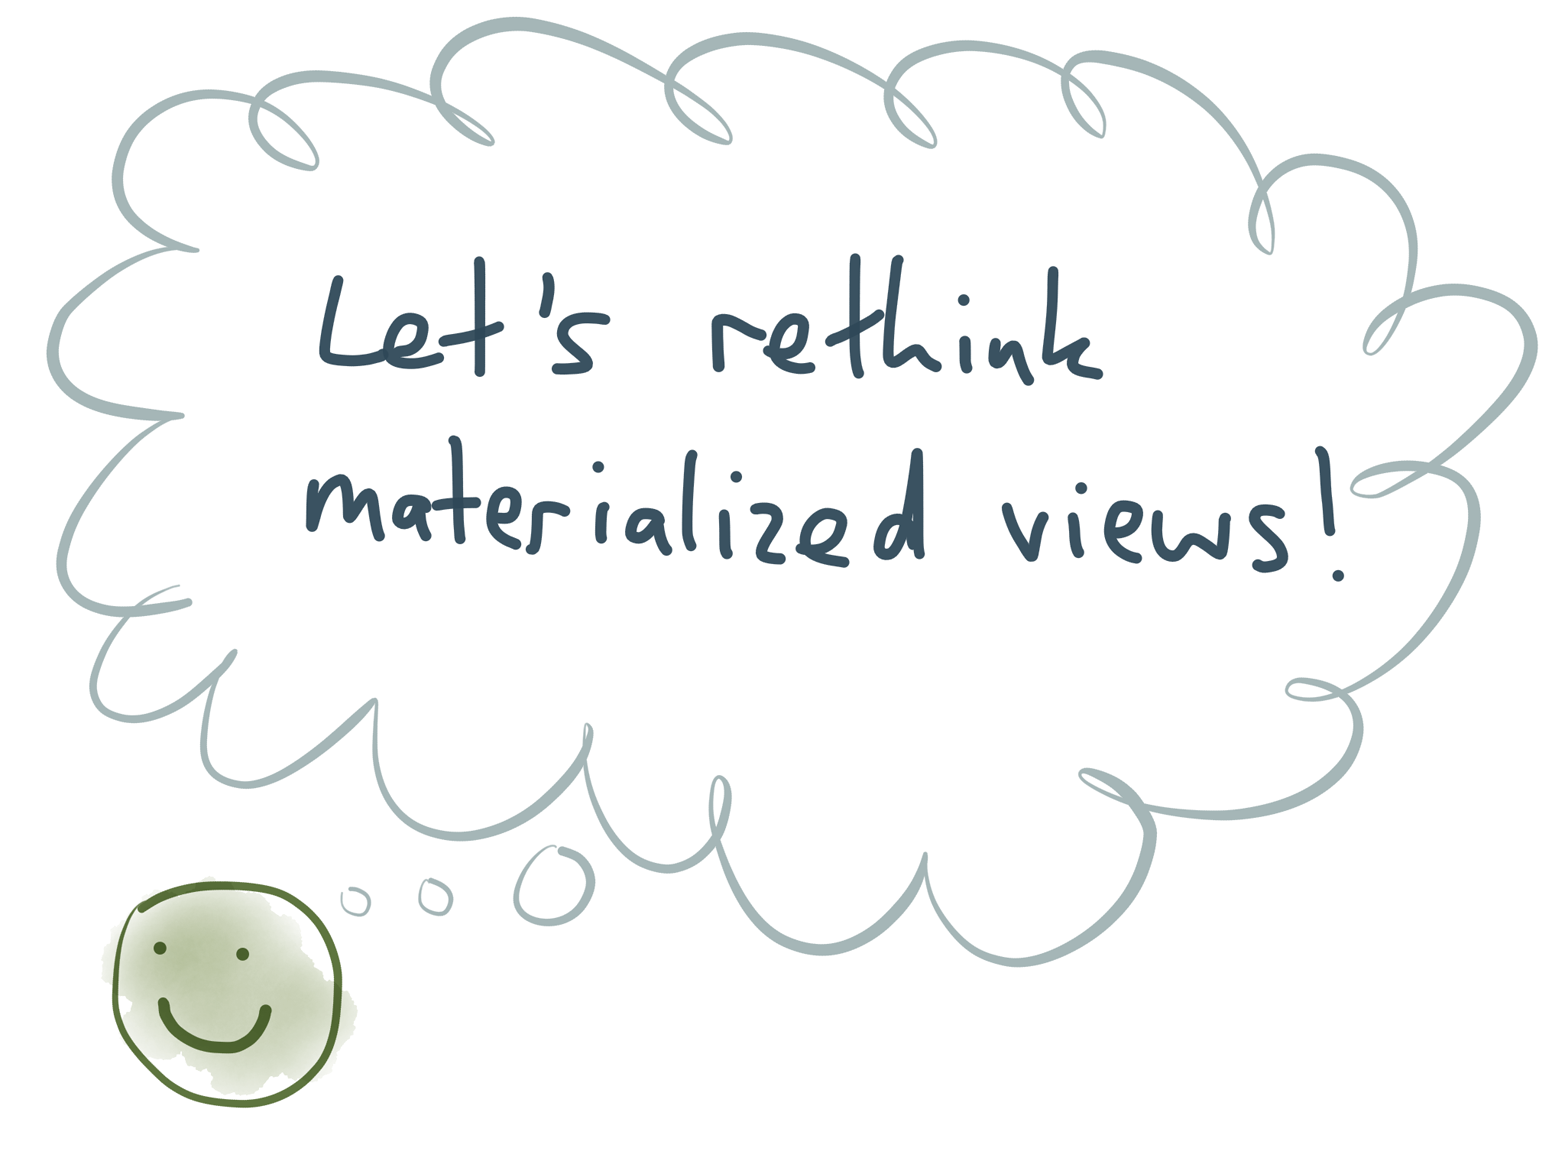 What would materialized views look like if we started with a clean slate?